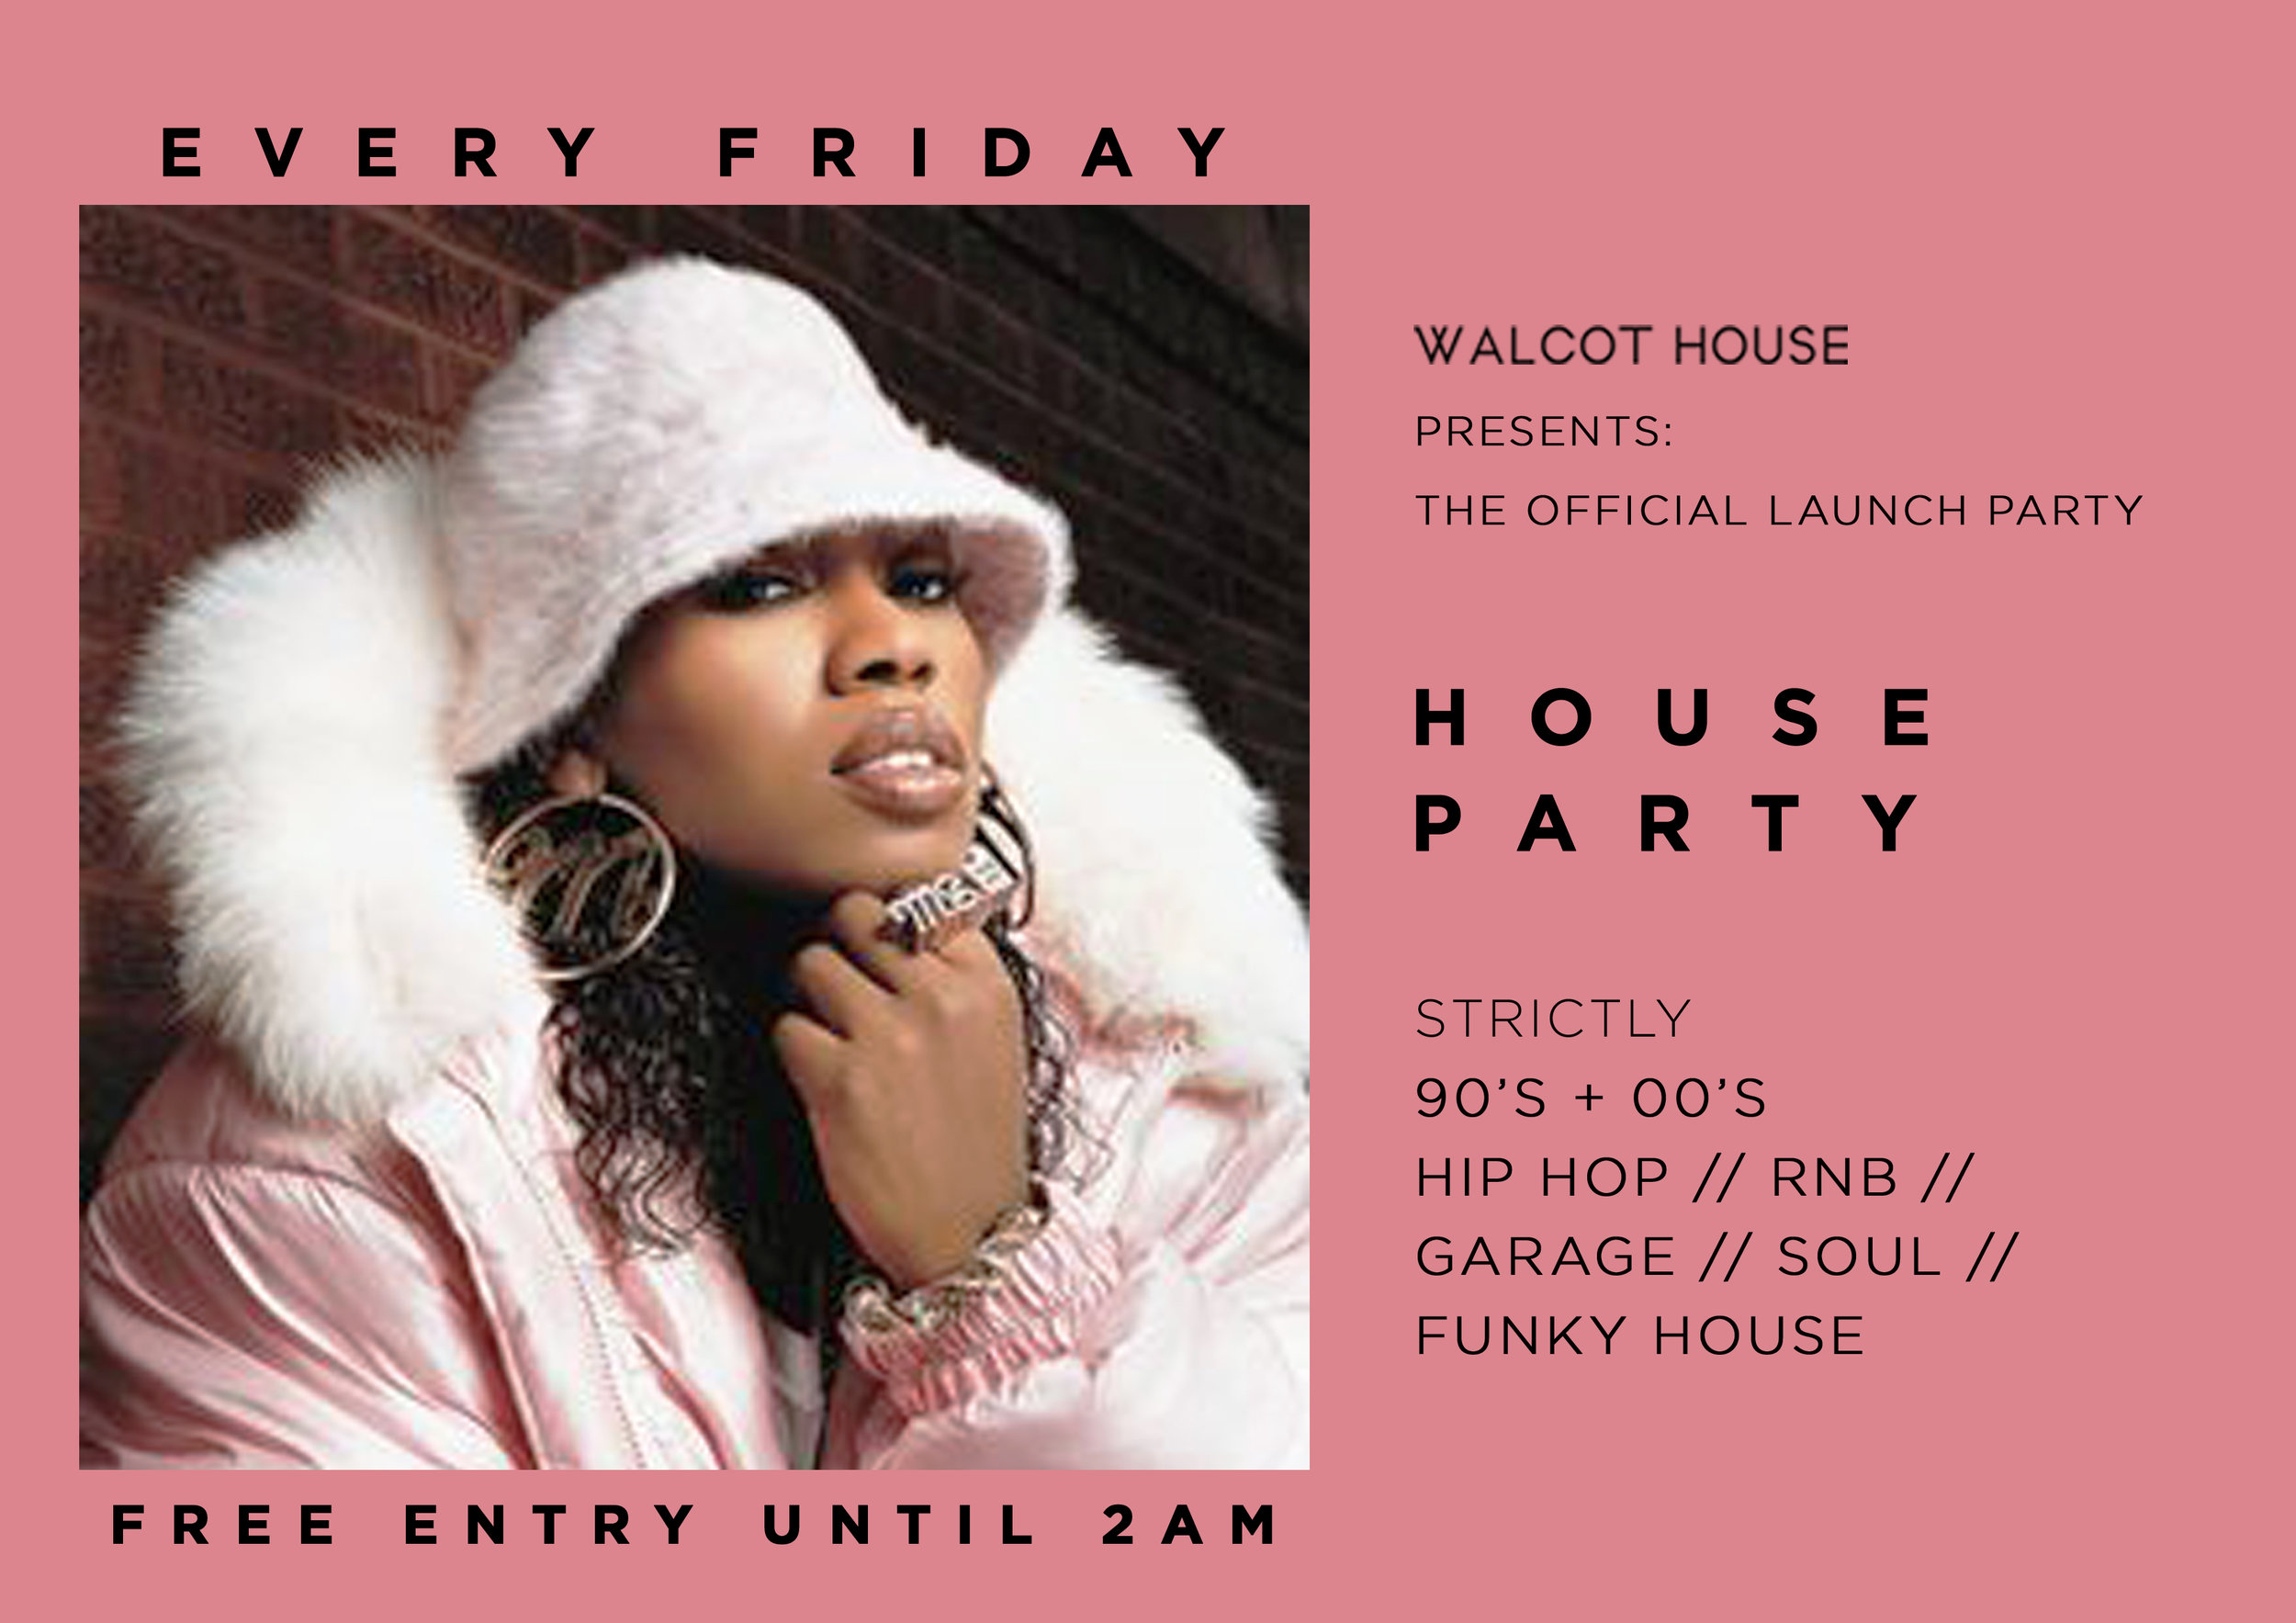 HOUSE PARTY FLYER MISSY ELLIOT.jpg